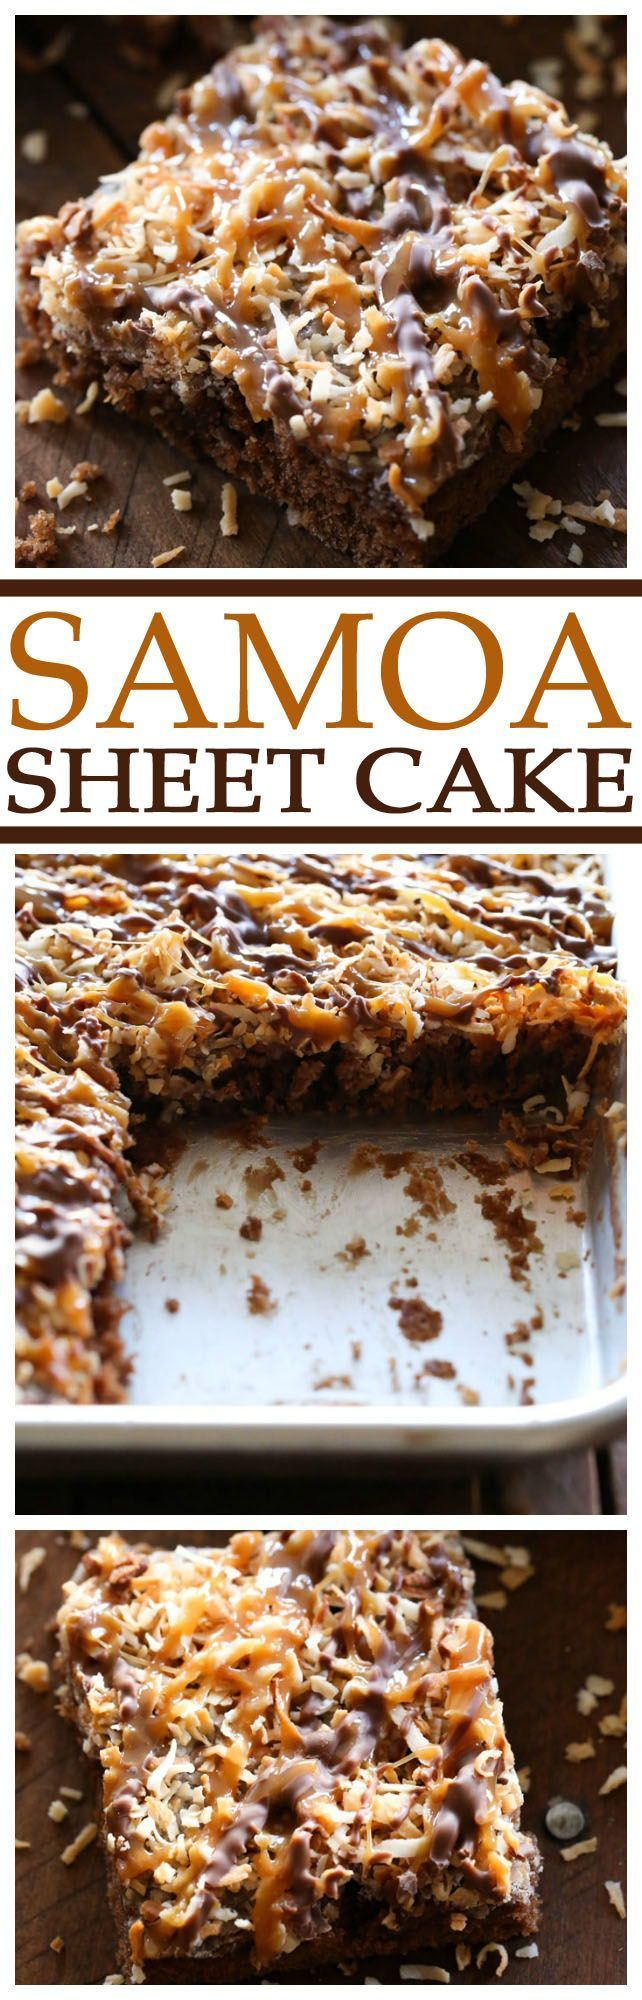 "Samoa Sheet Cake... this has been deemed one of ""Chef in Training""'s Top 5 favorite recipes on her blog! It is one of the best desserts you will ever taste!:"